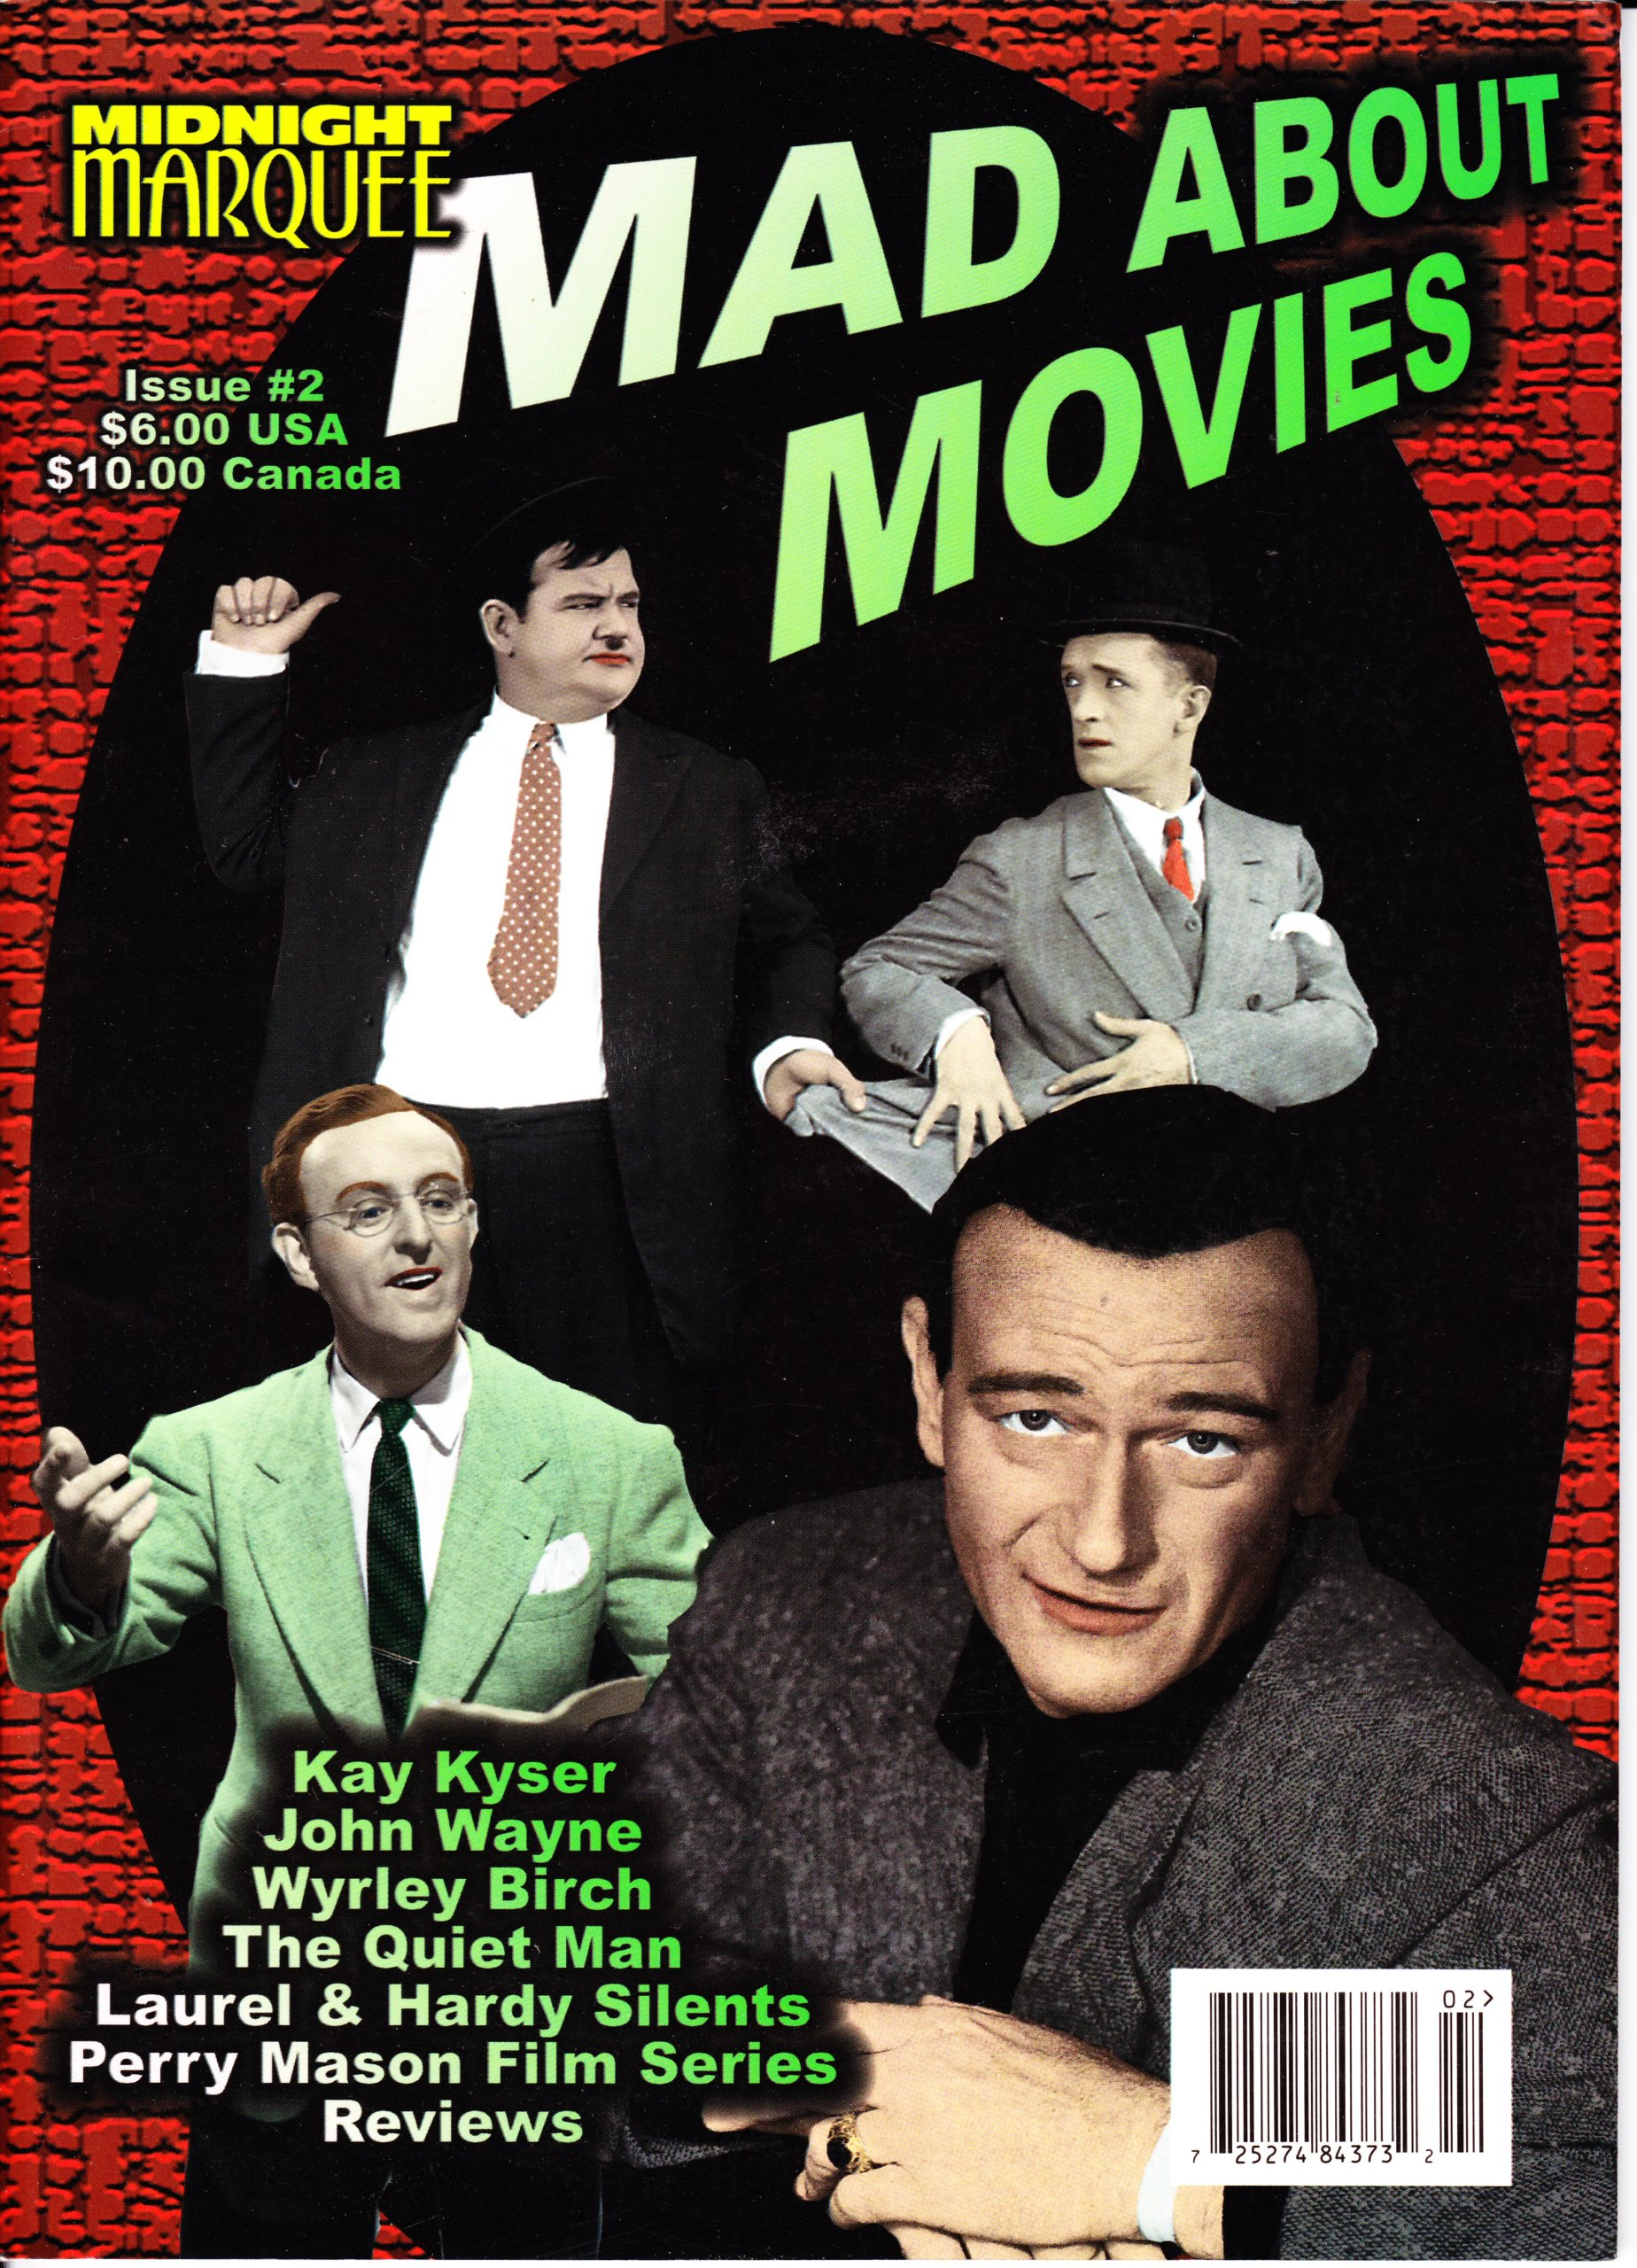 Midnight Marquee Mad About Movies, Issue #2 pdf